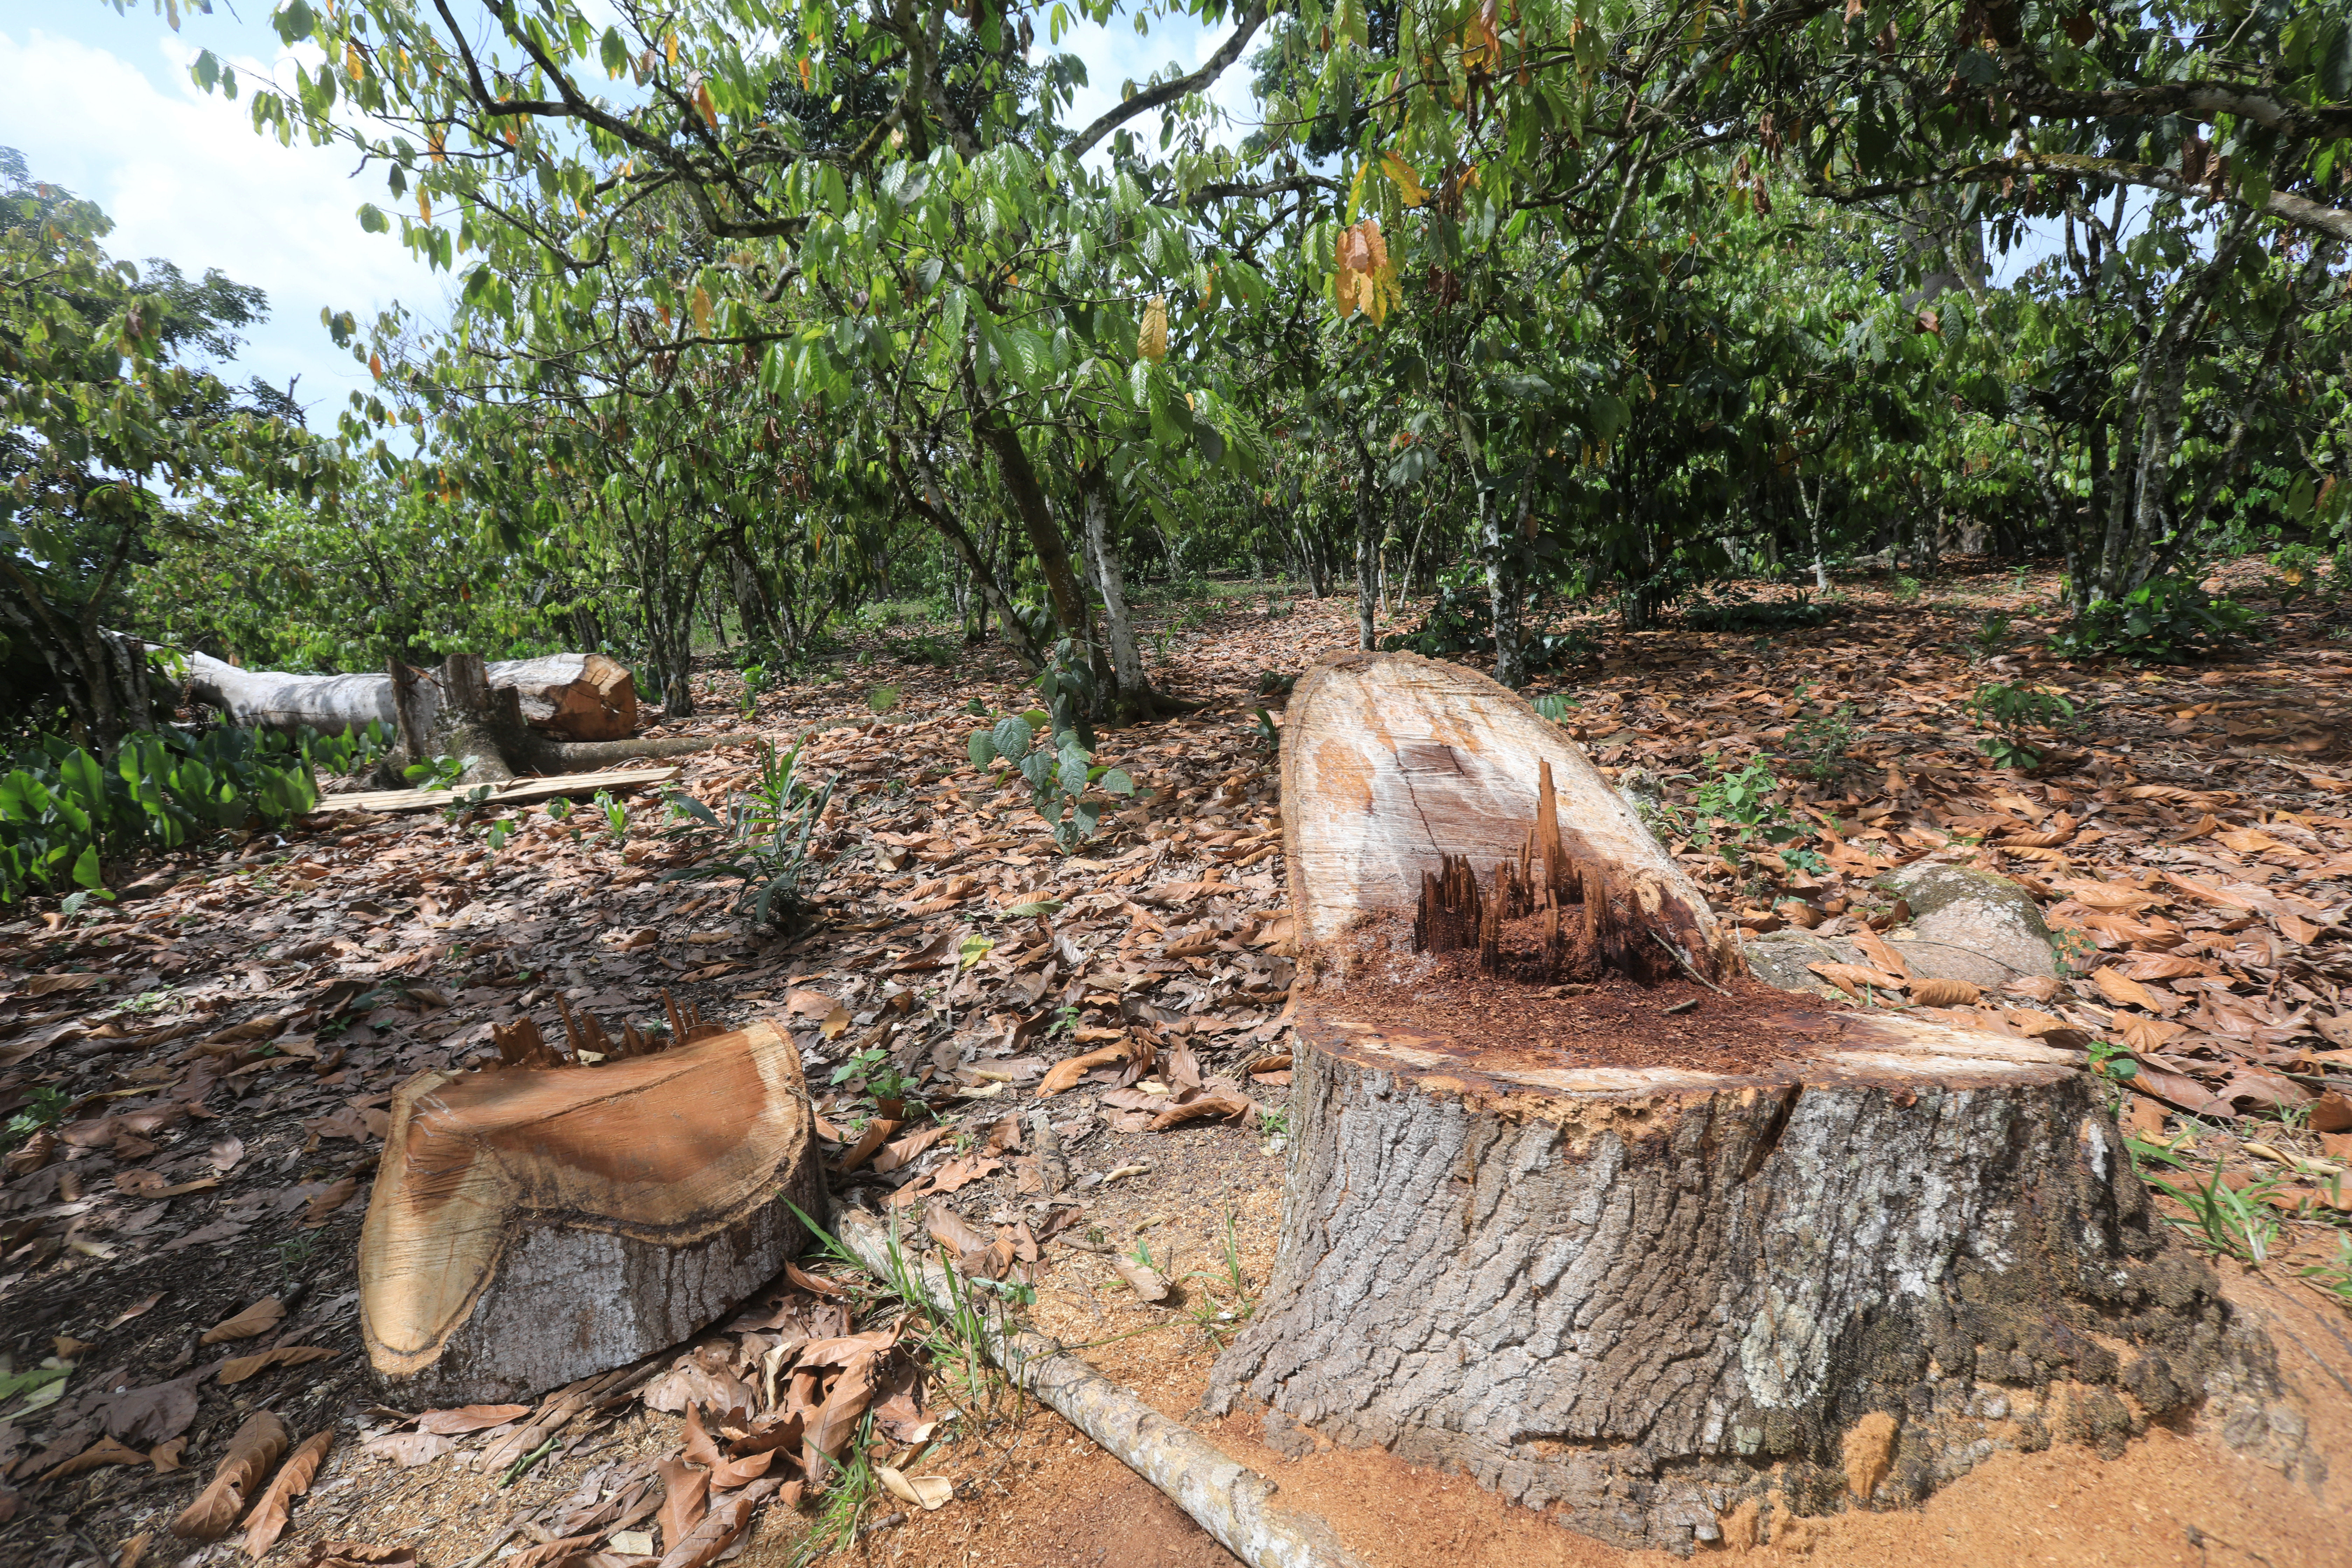 Felled tree is seen in the Rapides-Grah's classy forest where cocoa's illegal farmers used to live, in Soubre, Ivory Coast March 7, 2020. Picture taken March 7, 2020.